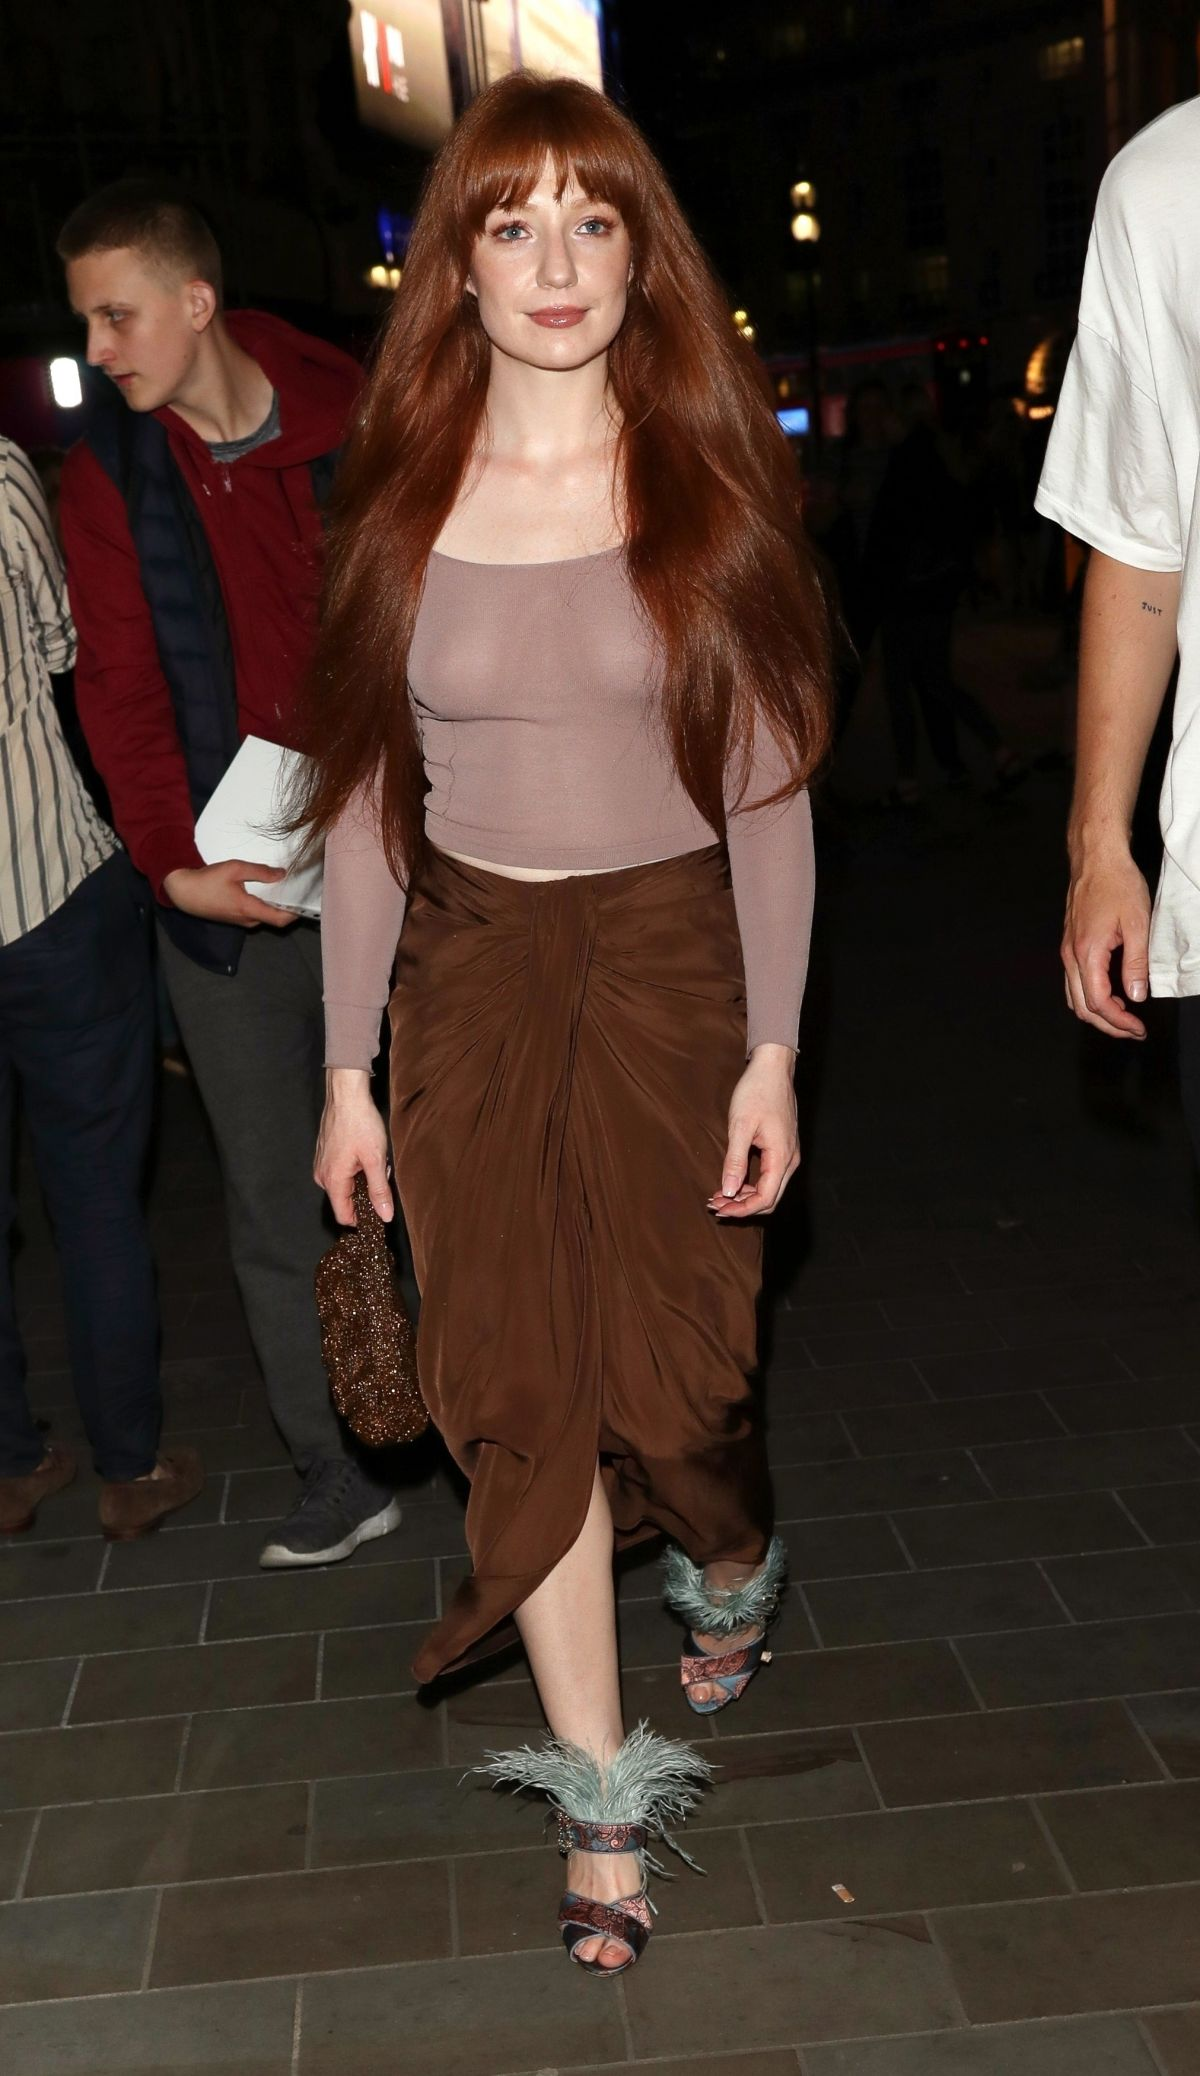 Nicola Roberts At Magnum Pleasure Store Launch Party In London 07 10 2019 Hawtcelebs